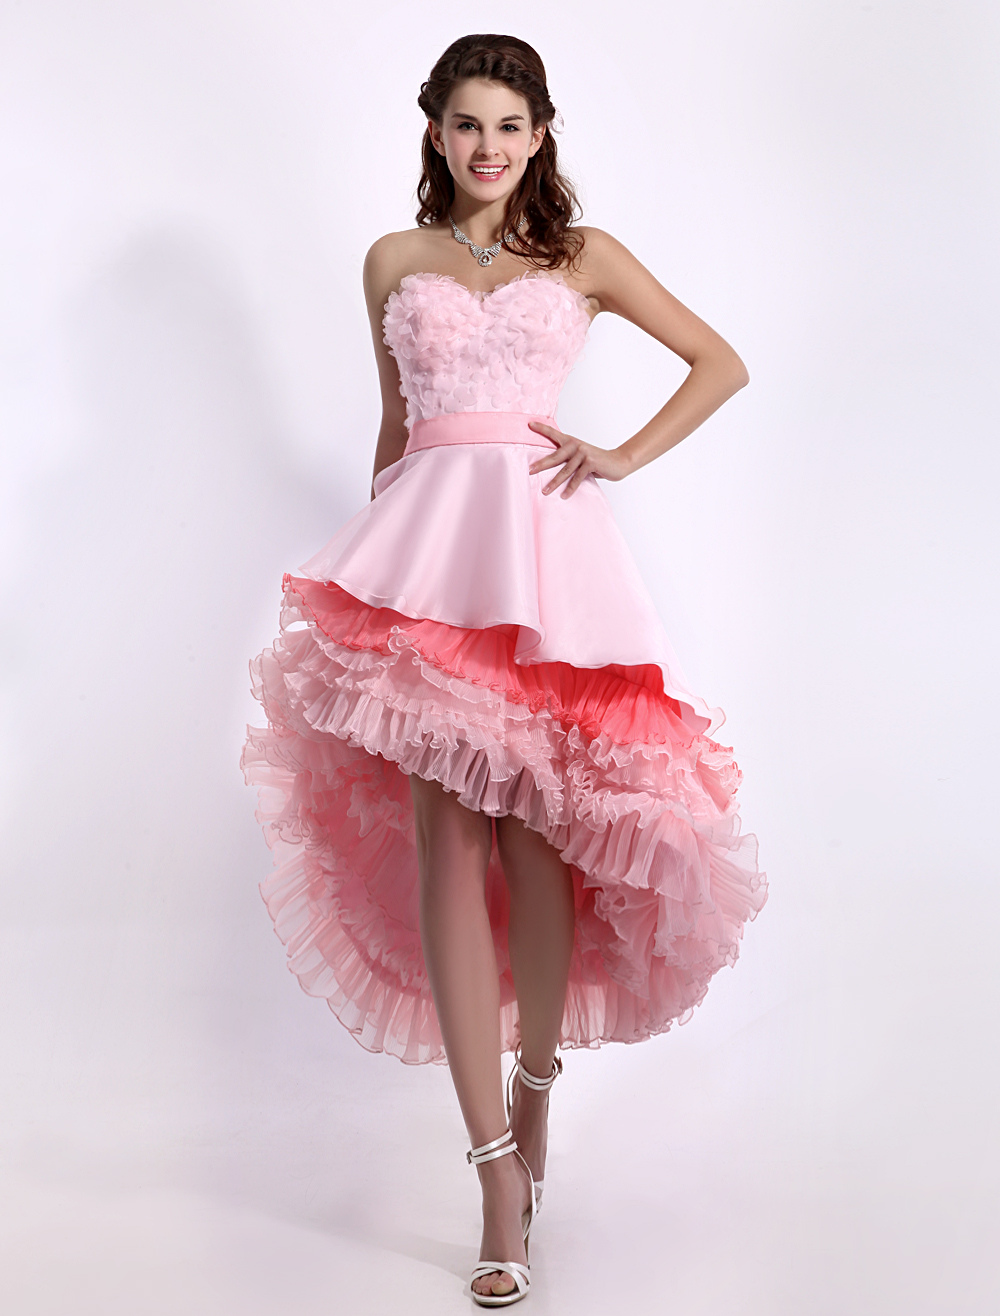 Glamour Pink Sweetheart Asymmetrical Hemline Tiered A-line Prom Dress  Milanoo